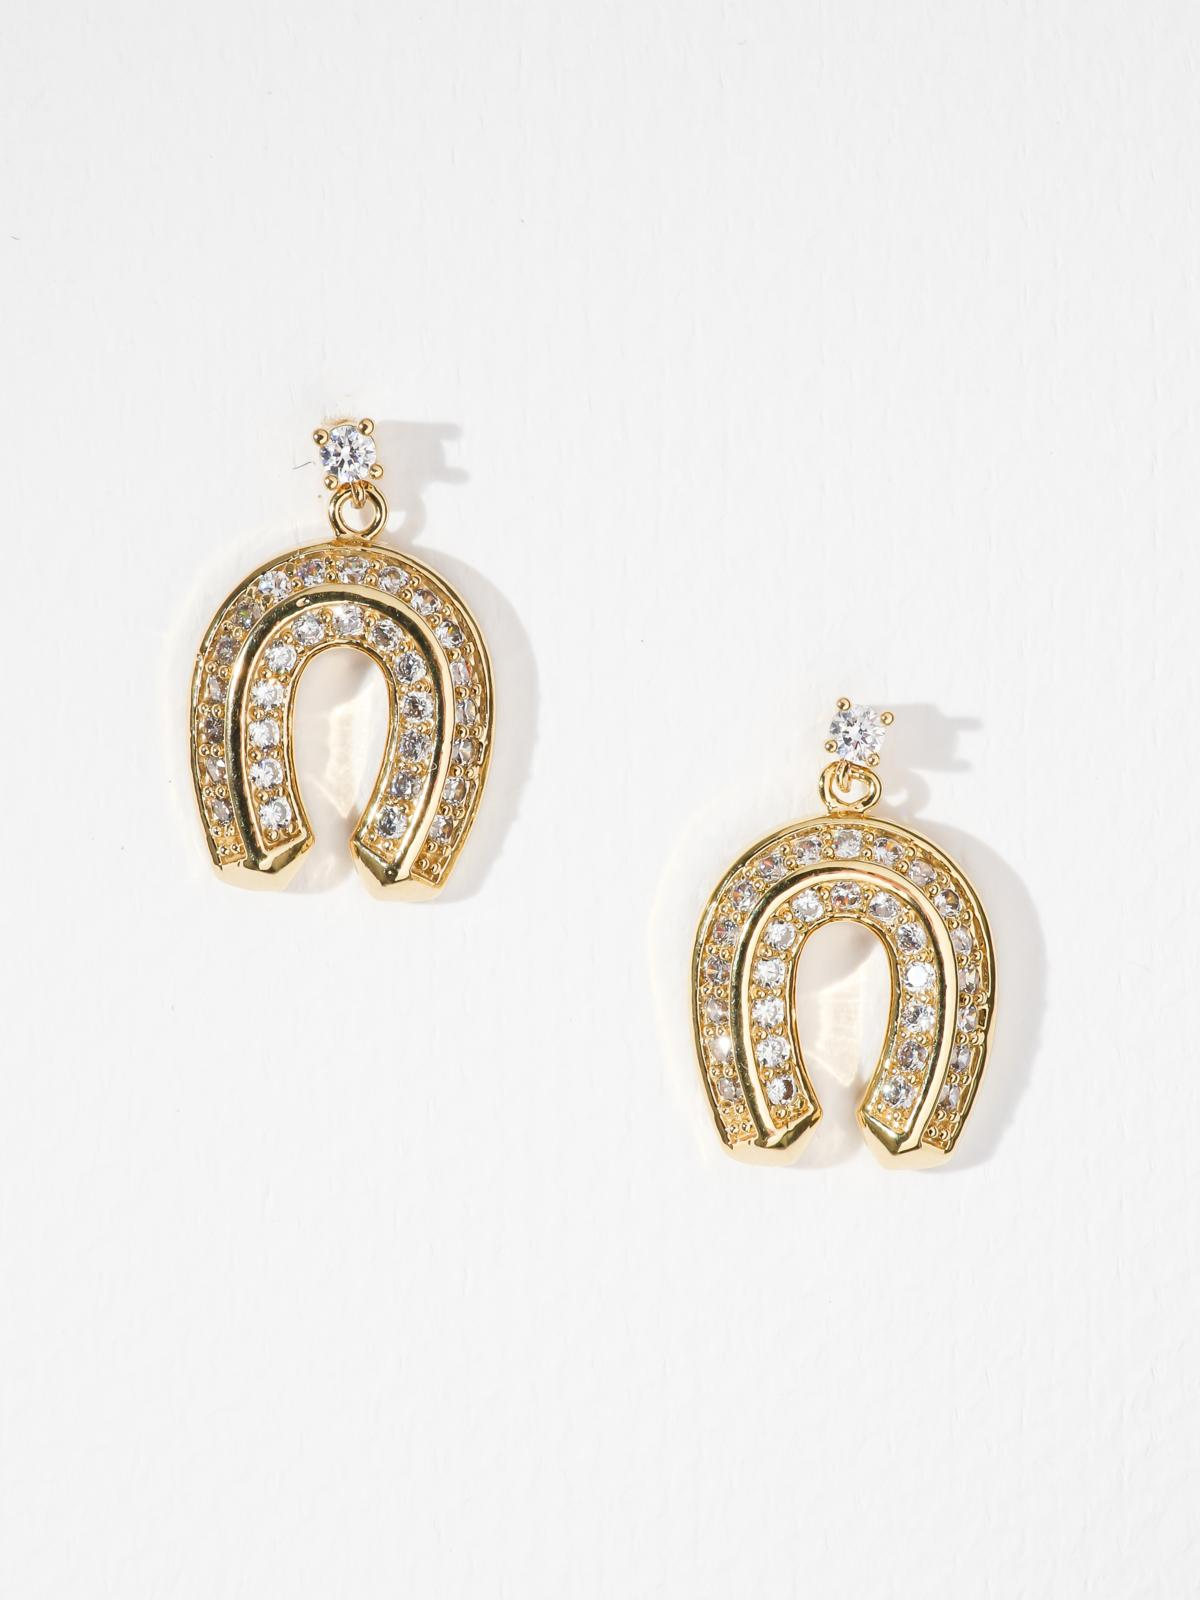 The Superstitious Earrings